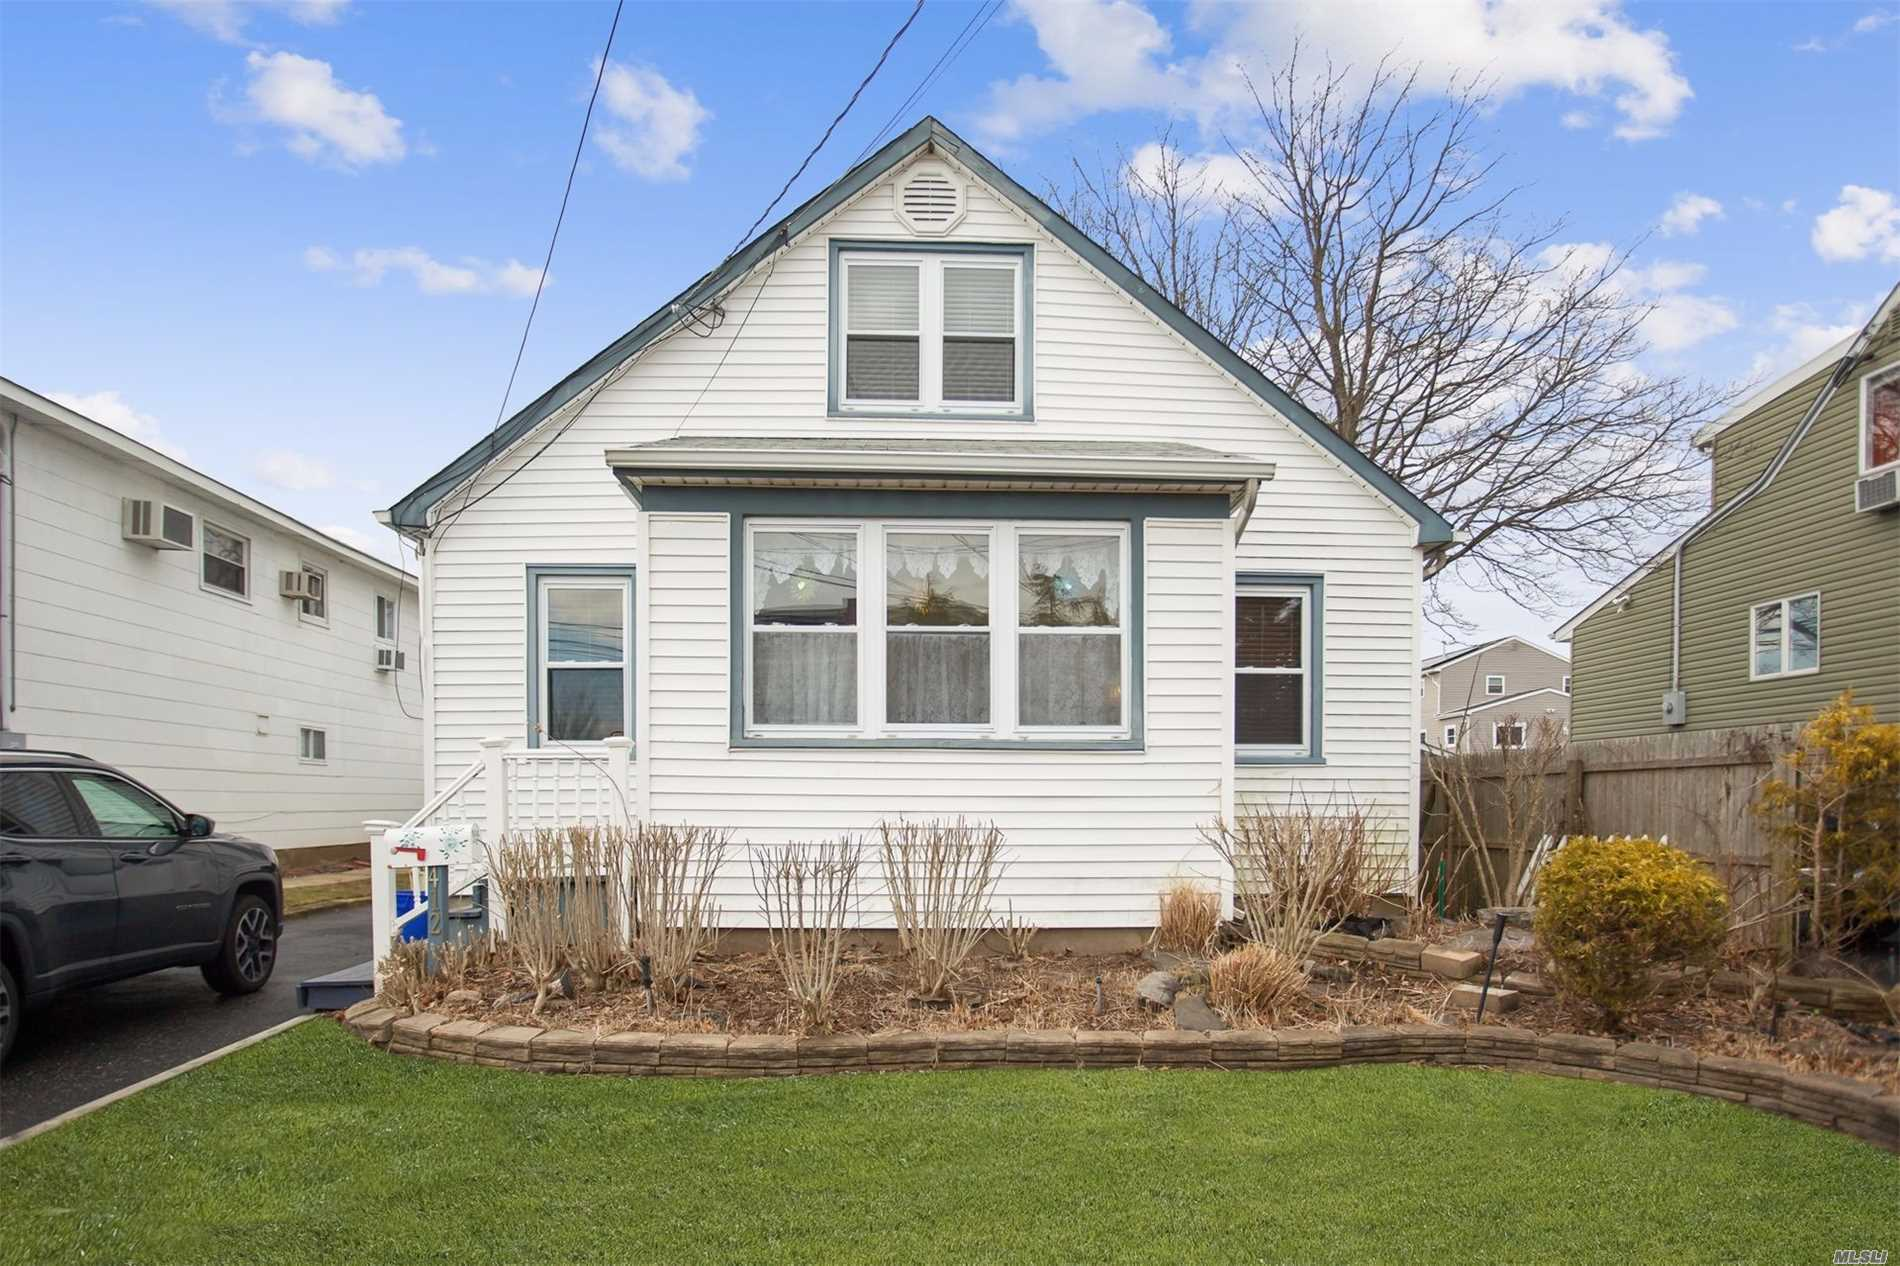 Adorable Charming Cape Located In Babylon Village. Close To Restaurants And Across The Street From Small Park. Sunny Porch With Southern Exposure, Updated Large Kitchen, Small Easy T Maintain Yard.Det One And A Half Garage.